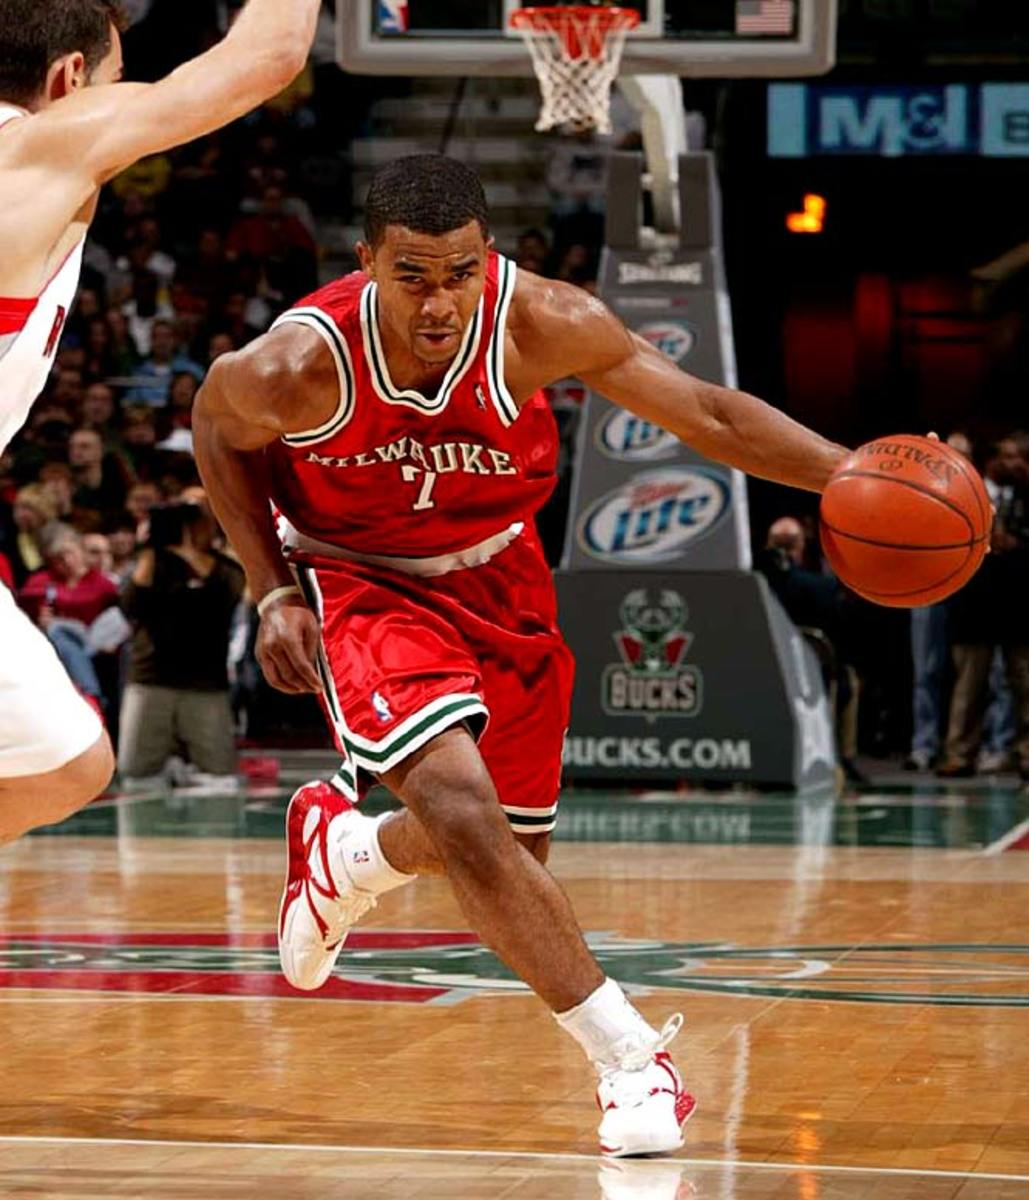 Ramon Sessions, Bucks